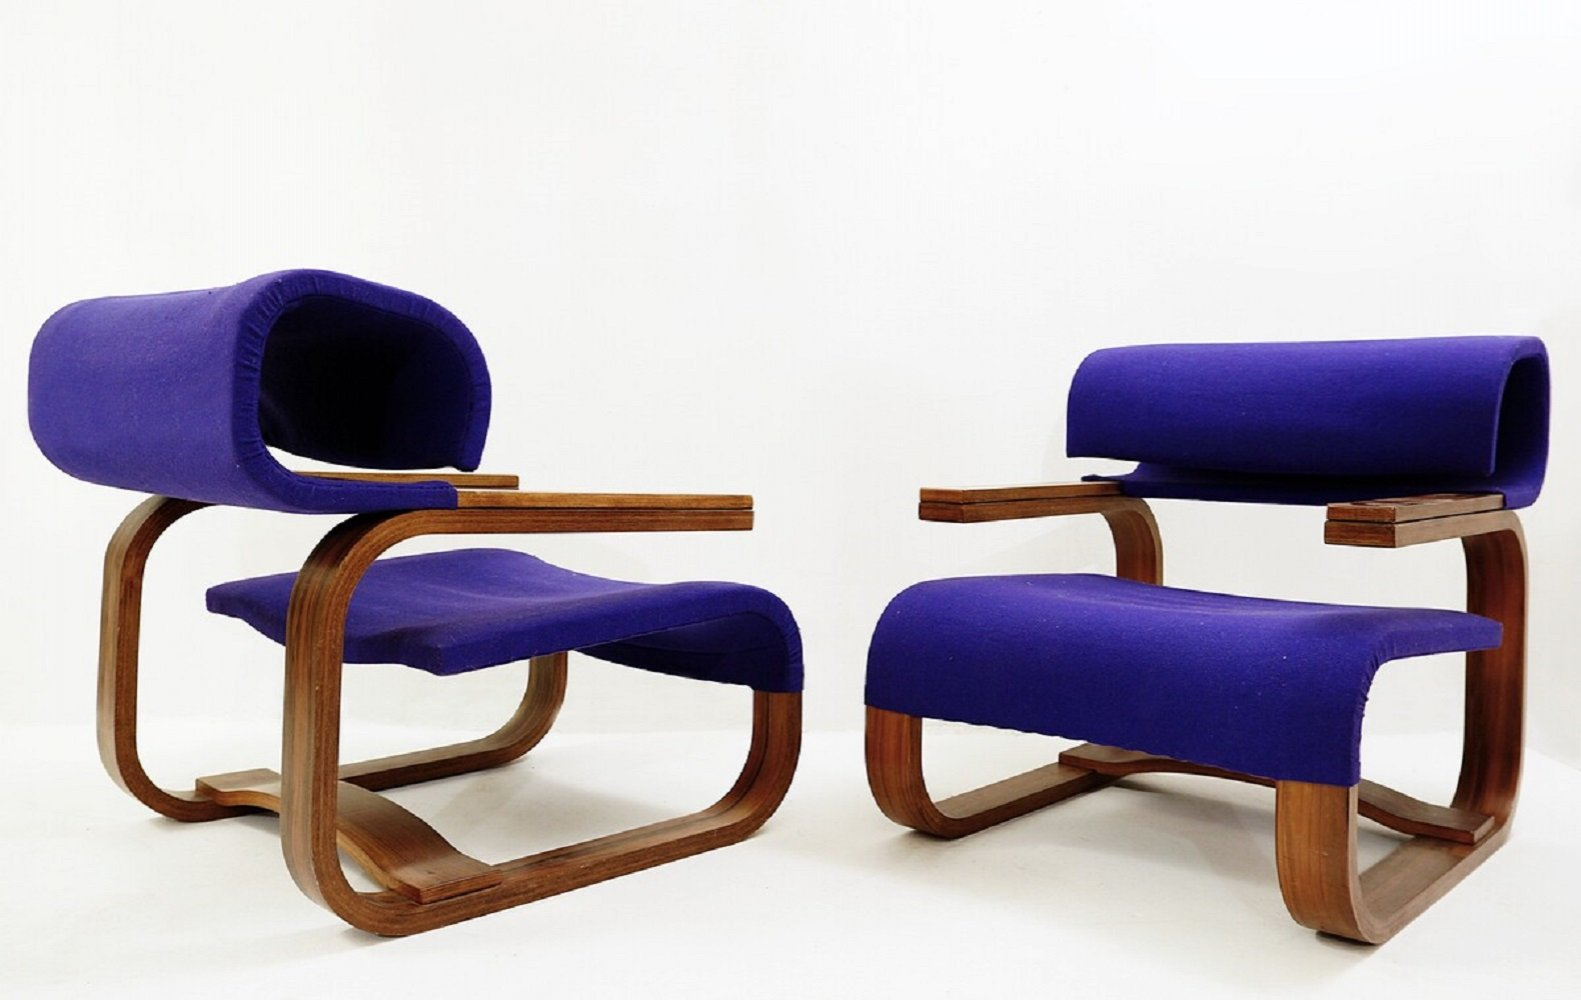 Pair of Armchairs by Jan Bocan for Thonet, Stockholm 1972